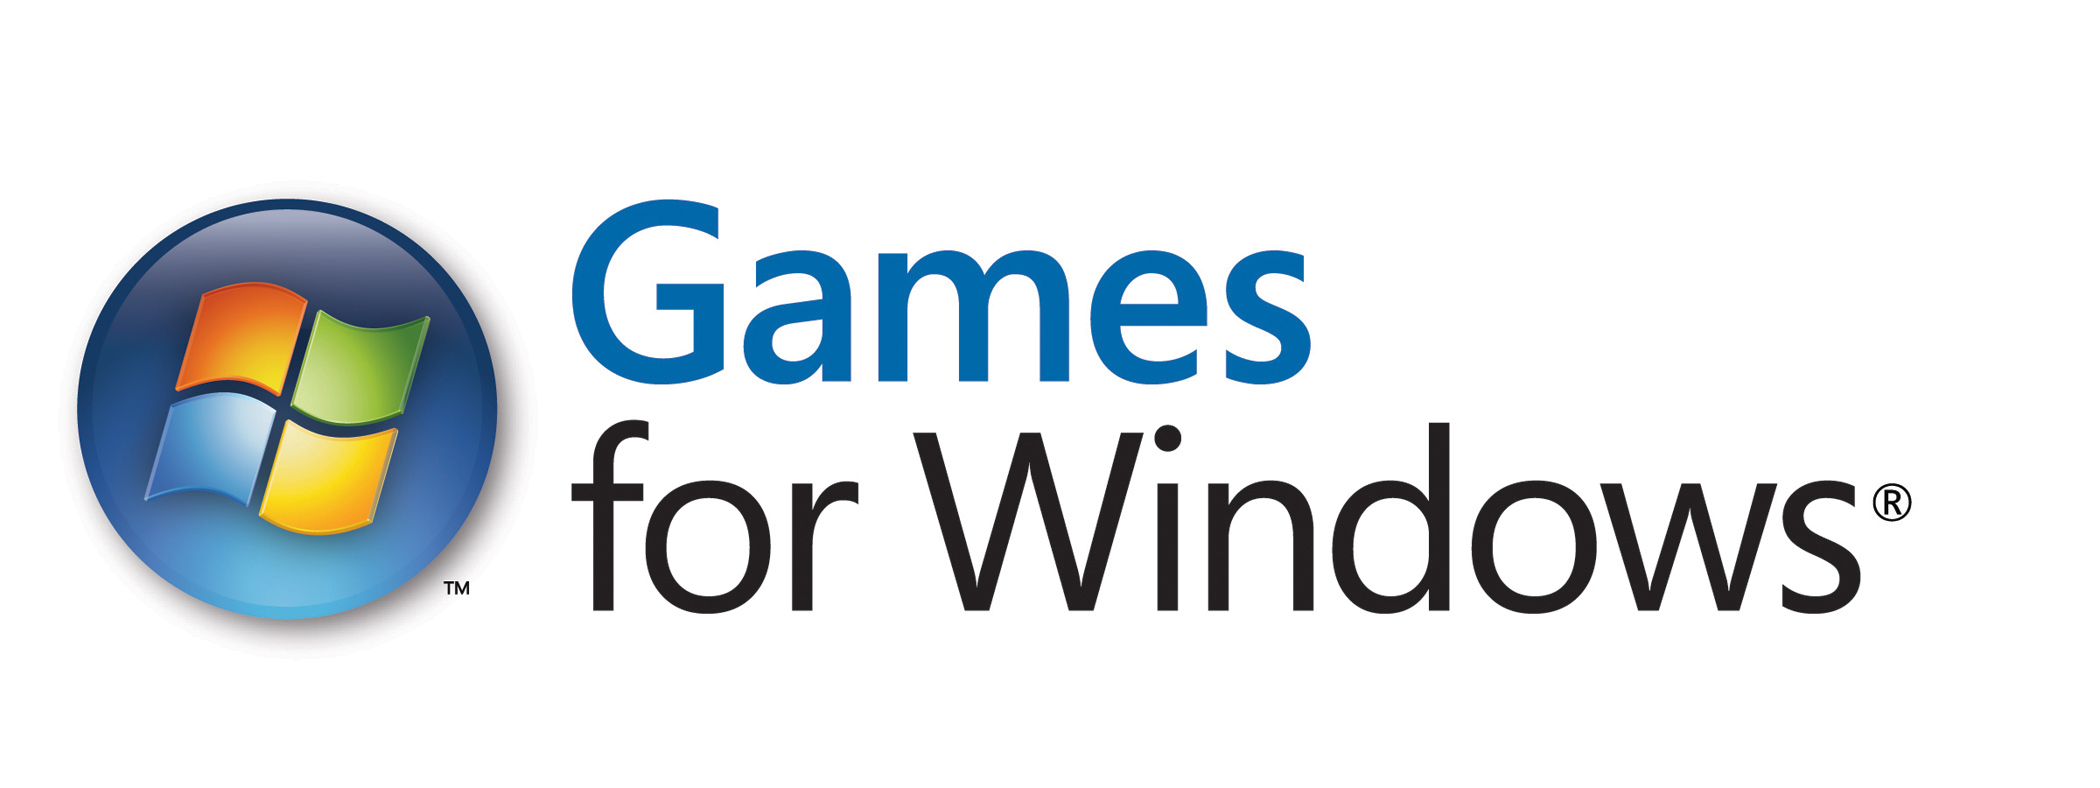 Remove Default games from Windows 7 - Windows